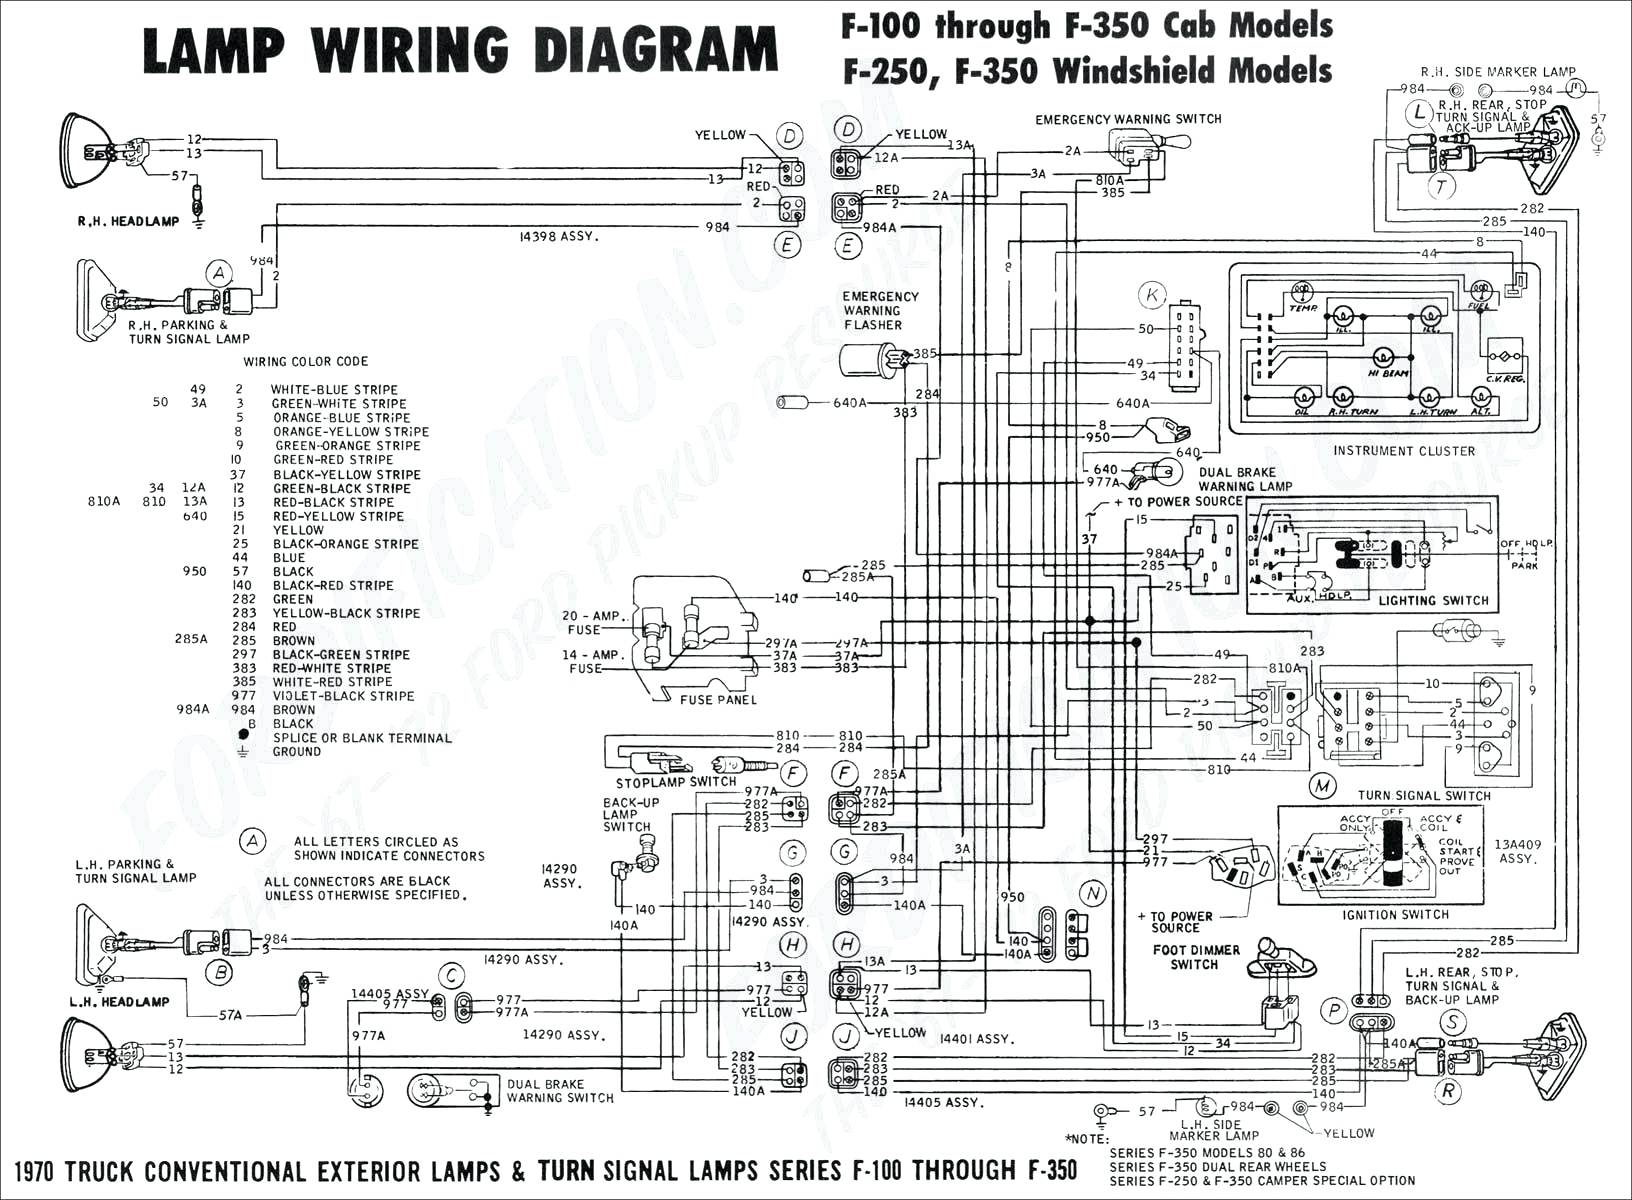 96 F150 Wiring Diagram - Wiring Diagram 500 Air Conditioner Wiring Diagram For F on circuit breaker for air conditioner, compressor for air conditioner, frame for air conditioner, battery for air conditioner, schematic for air conditioner, hard start kit for air conditioner, fuse for air conditioner, transfer switch for air conditioner, repair for air conditioner, remote control for air conditioner, water pump for air conditioner, accessories for air conditioner, coil for air conditioner, sensor for air conditioner, parts for air conditioner, plug for air conditioner, control panel for air conditioner, connector for air conditioner, cable for air conditioner, wiring diagram motor,